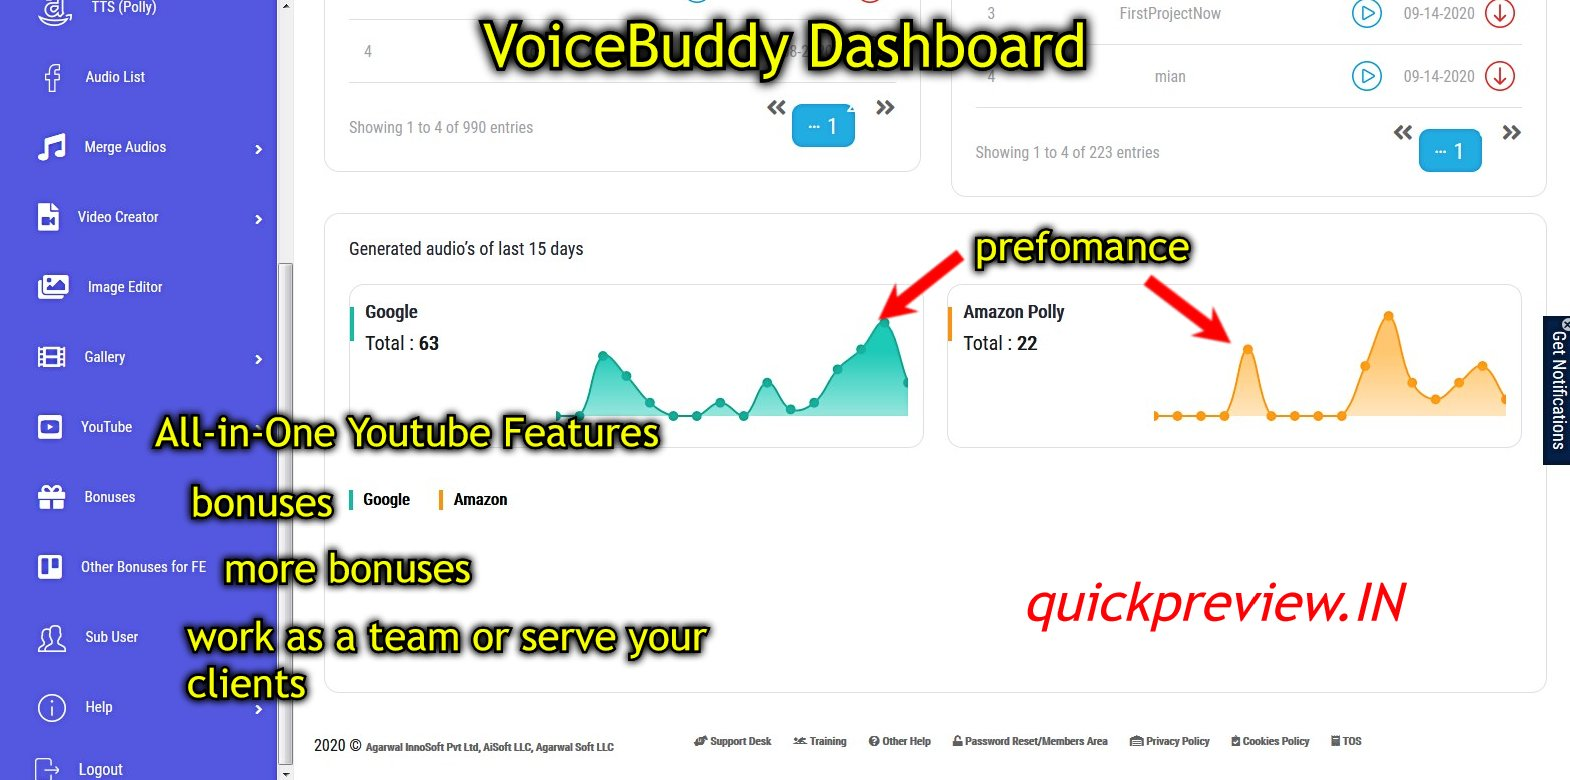 VOICEBUDDY 2